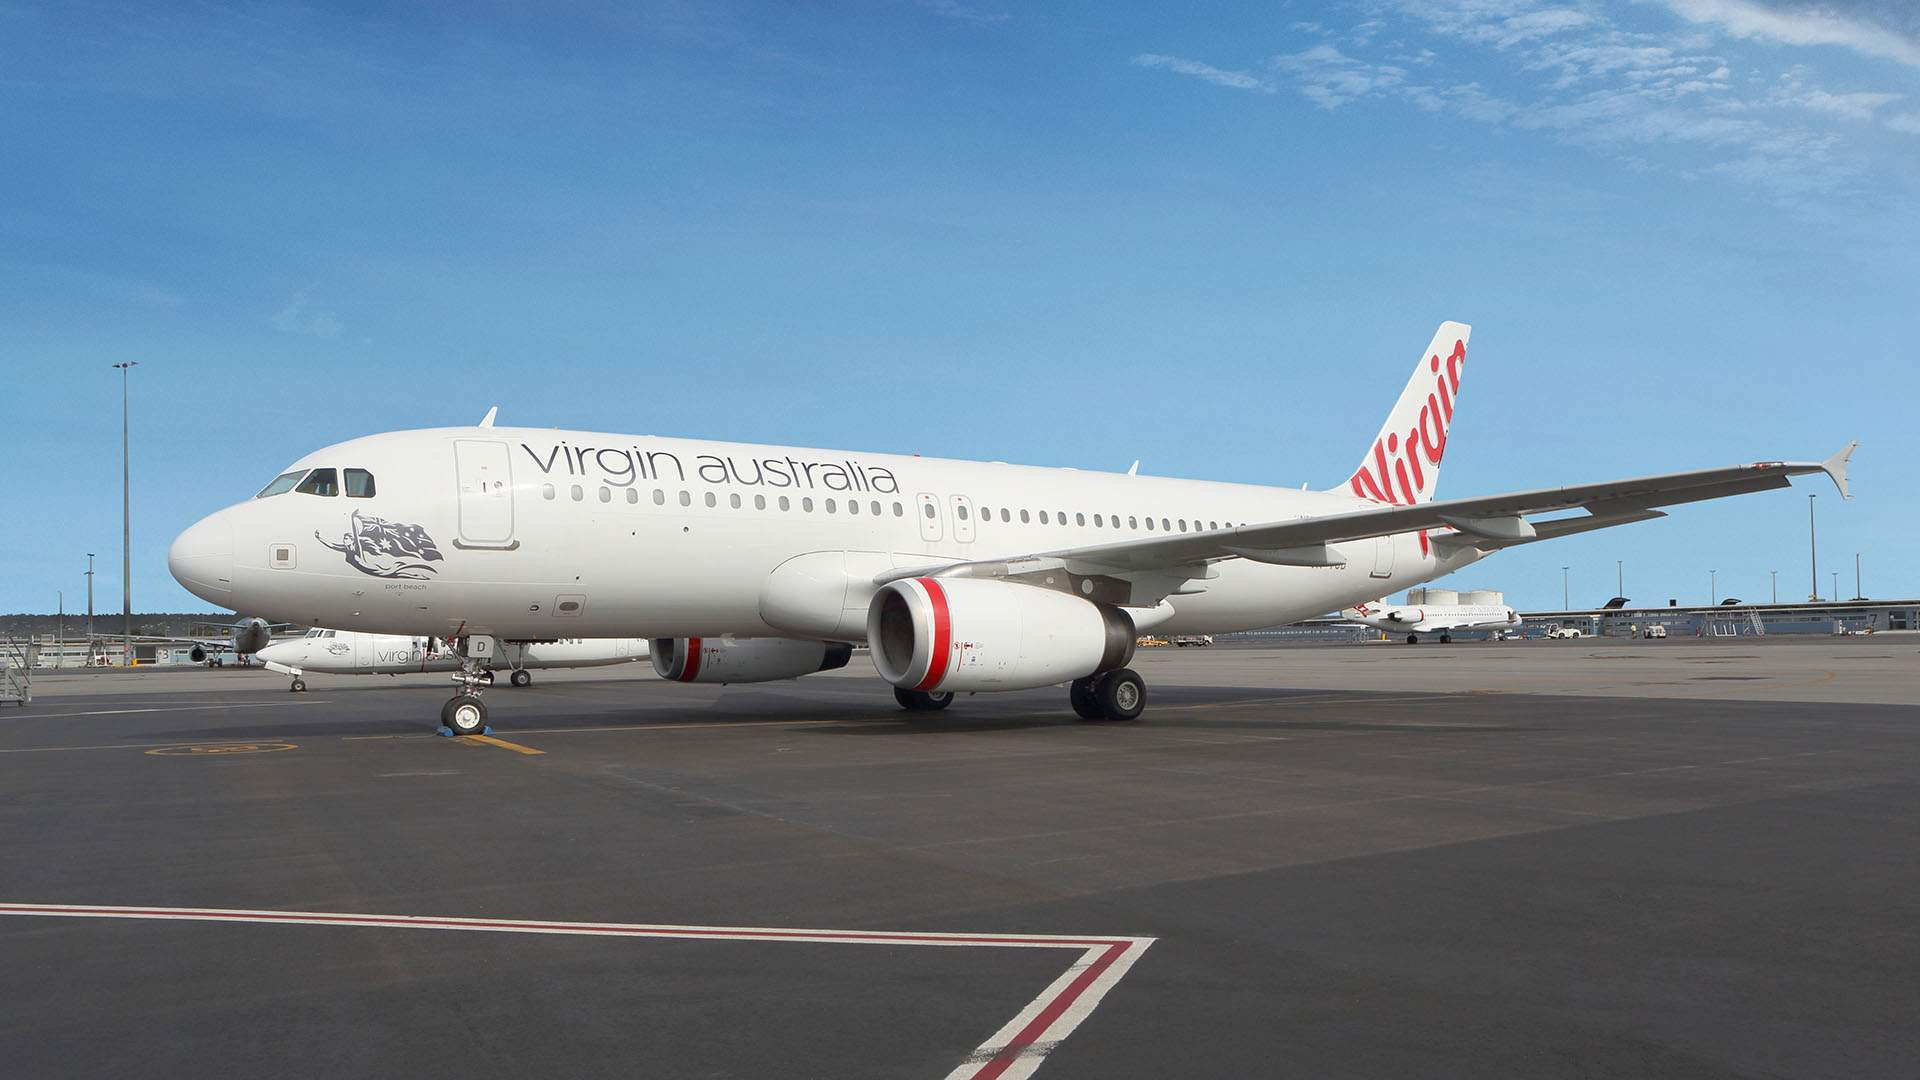 Virgin Australia Has Scrapped Its Booking Change Fees Until January 2021